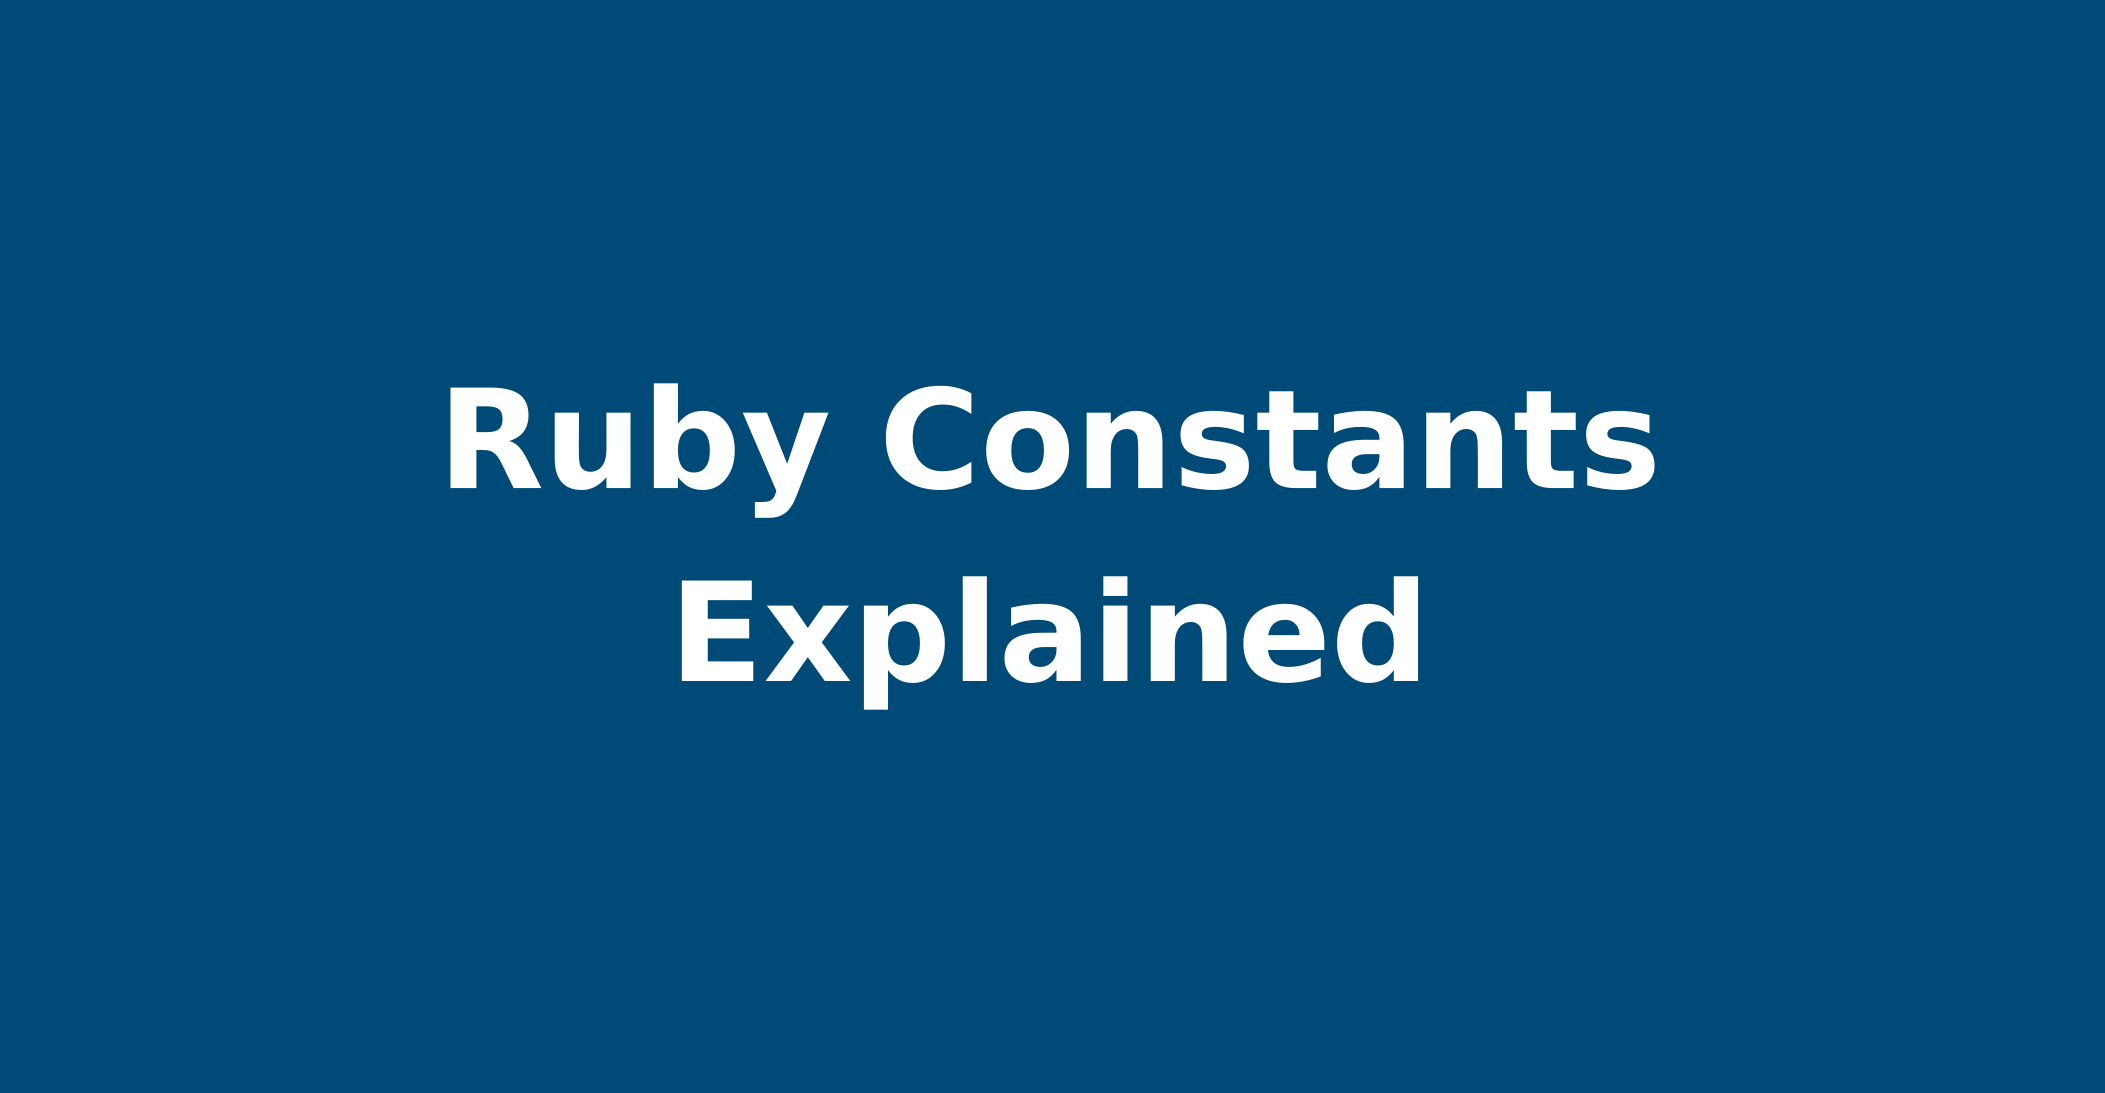 Everything You Need to Know About Ruby Constants